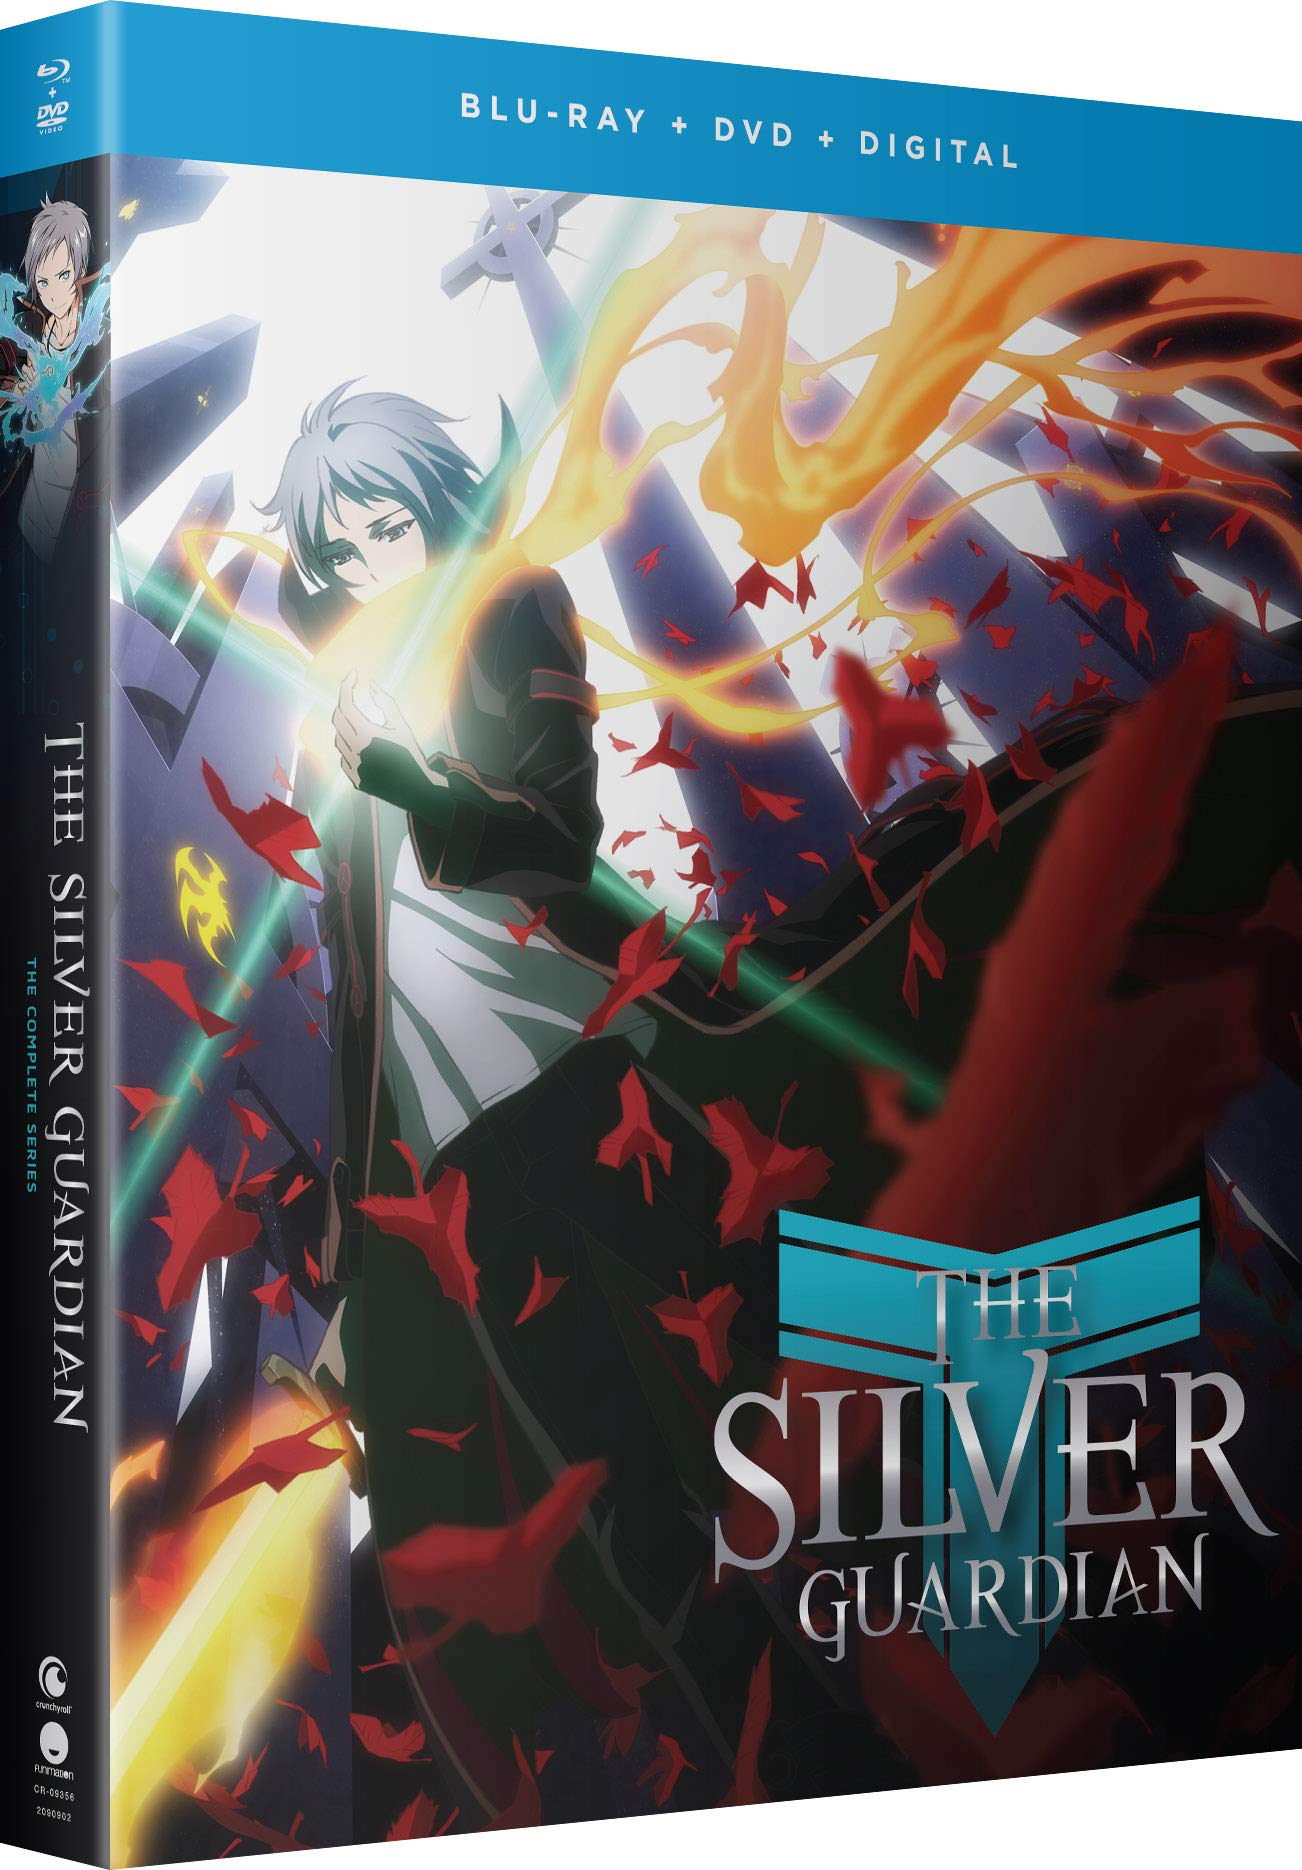 Blu-ray : The Silver Guardian: The Complete Series (With DVD, Boxed Set, Subtitled, Digital Copy)